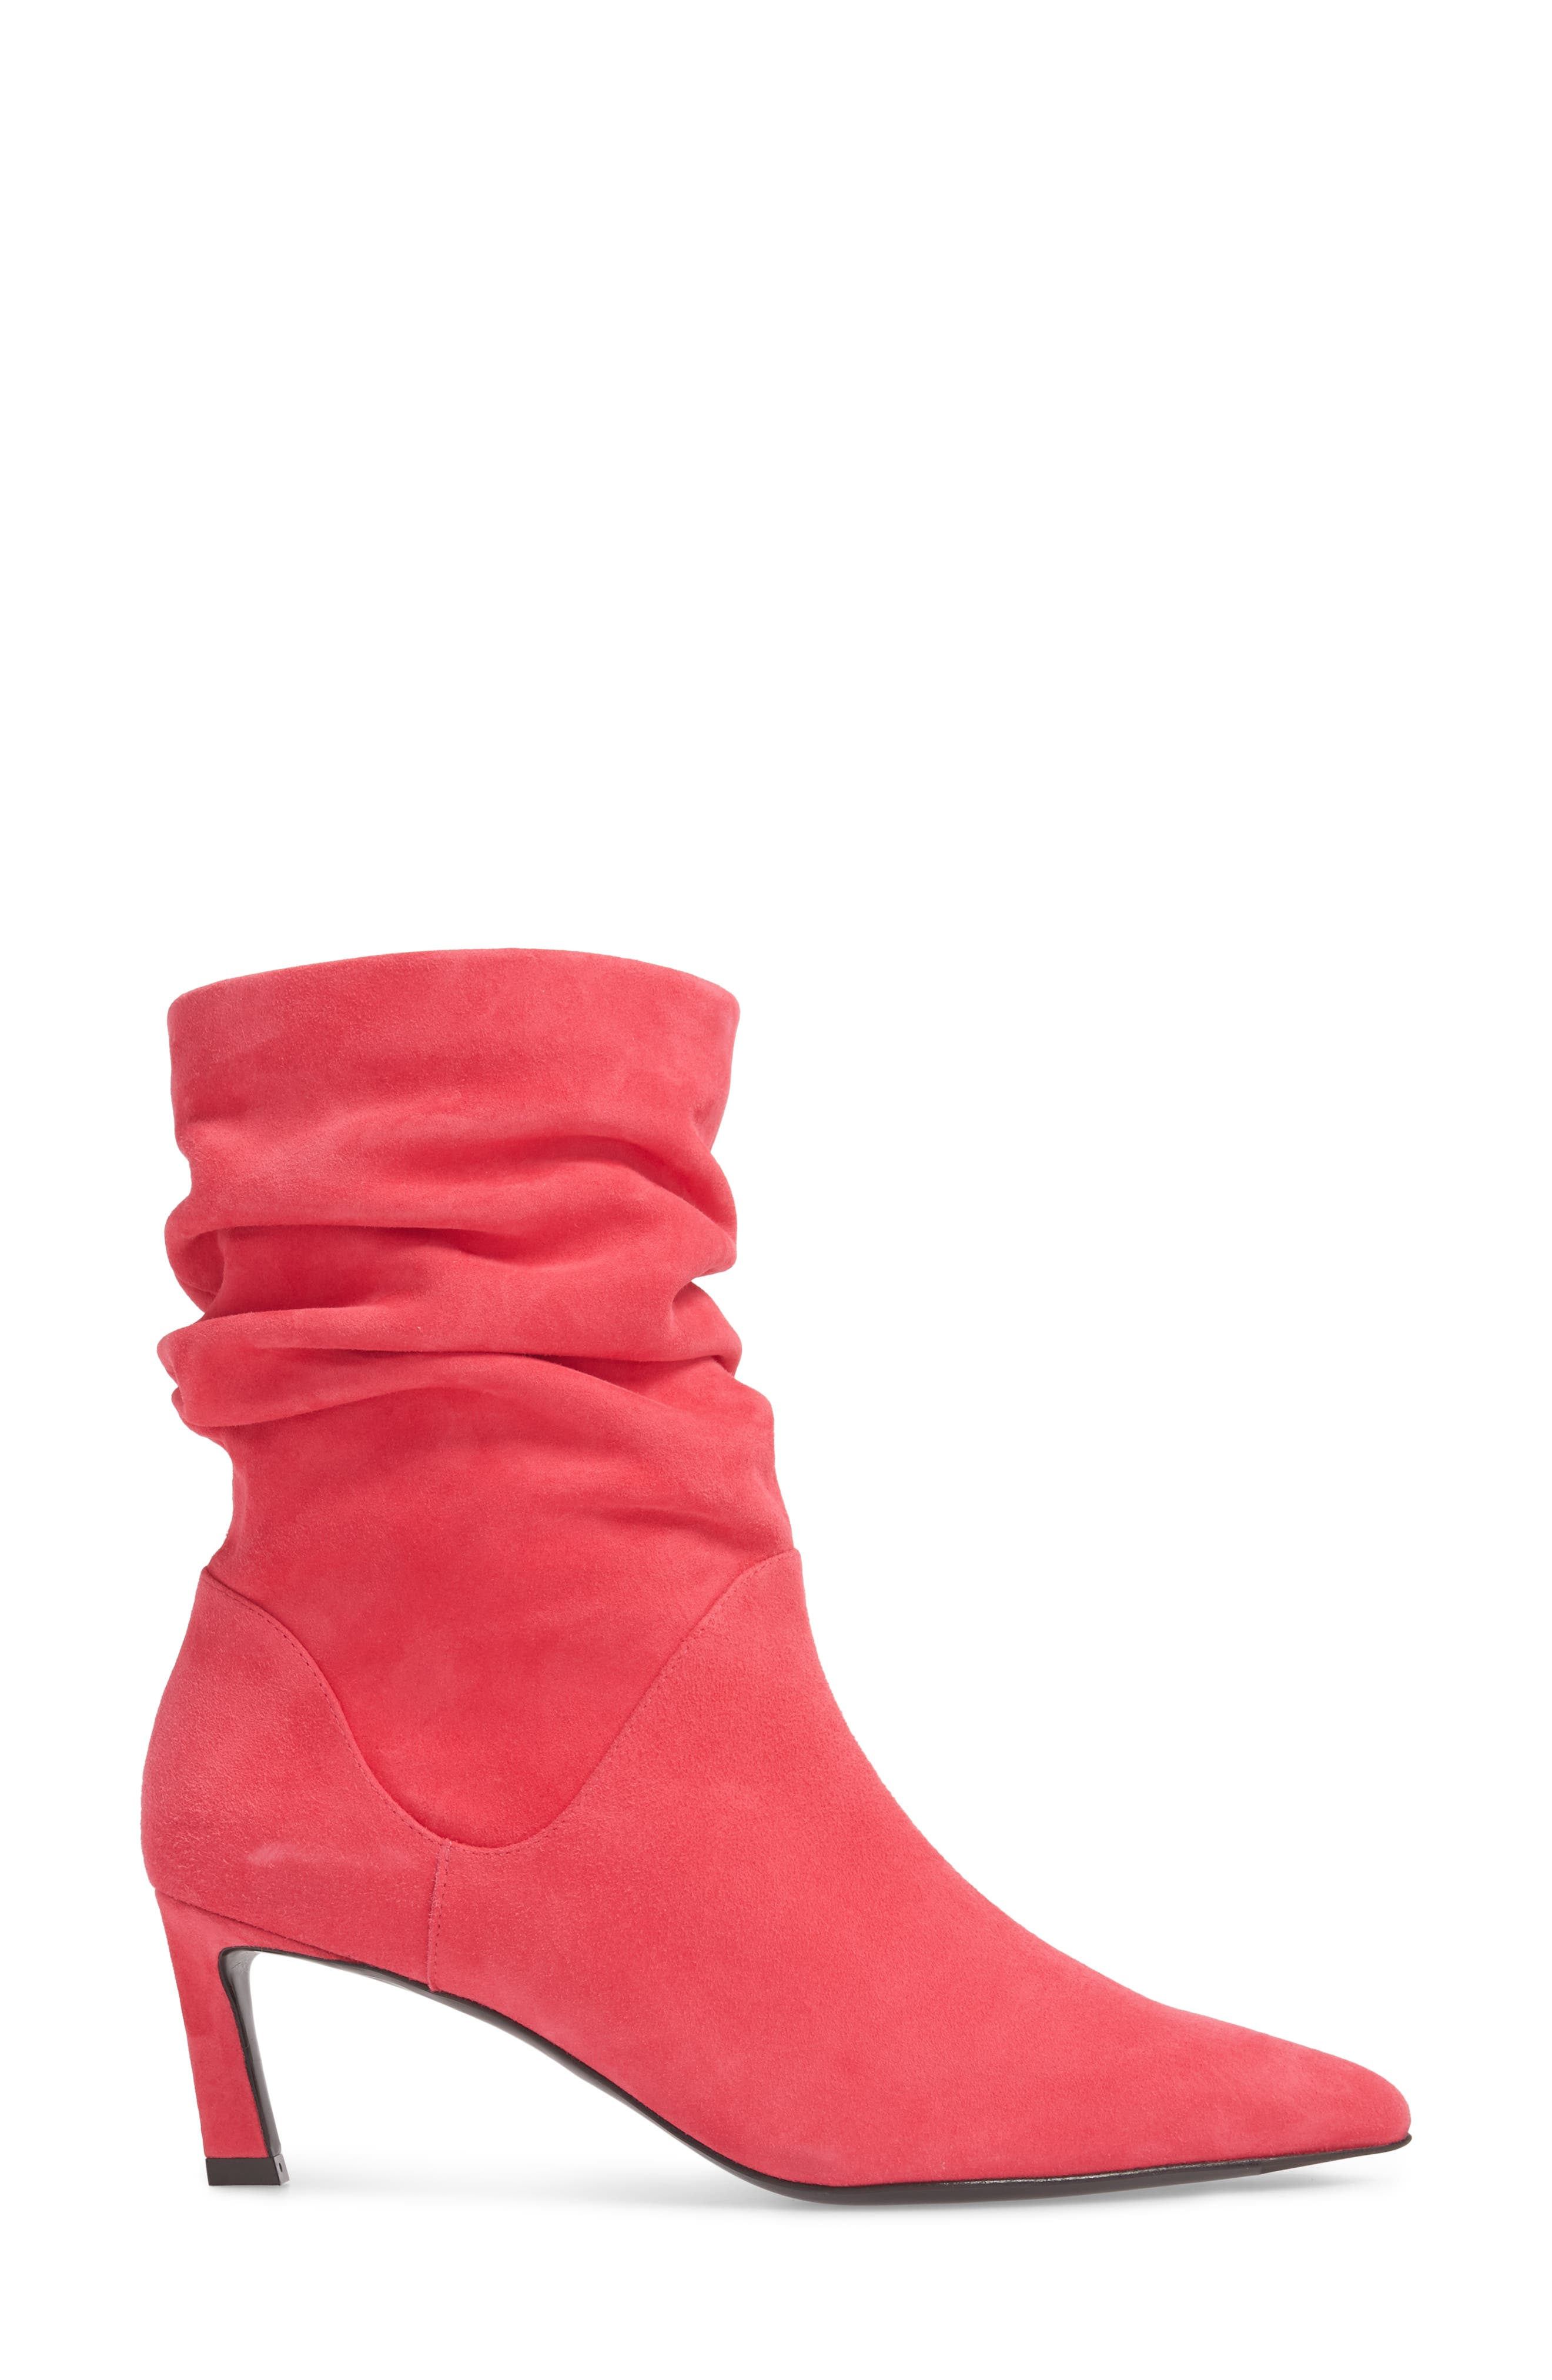 Demibenatar Slouch Bootie,                             Alternate thumbnail 3, color,                             Coral Luxe Suede